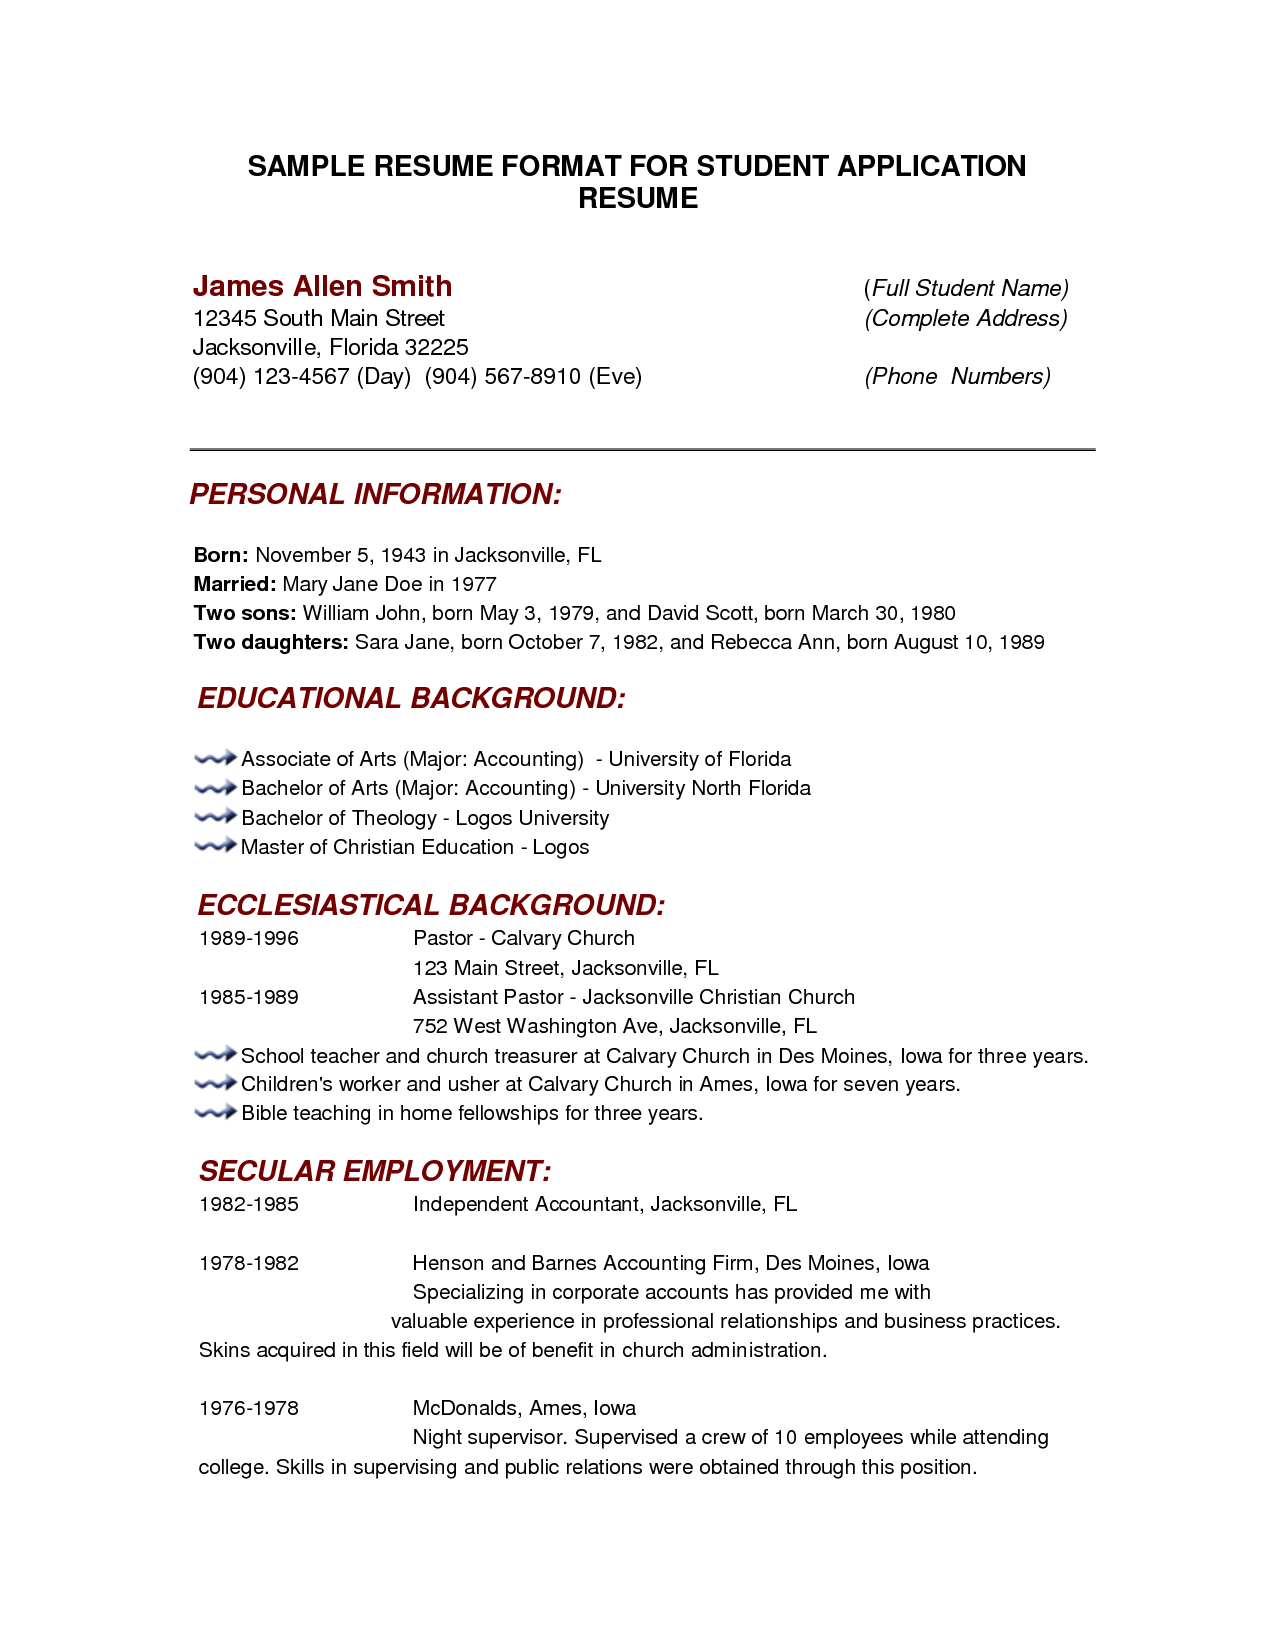 Pin By Resumejob On Resume Job Sample Resume Resume Format Resume